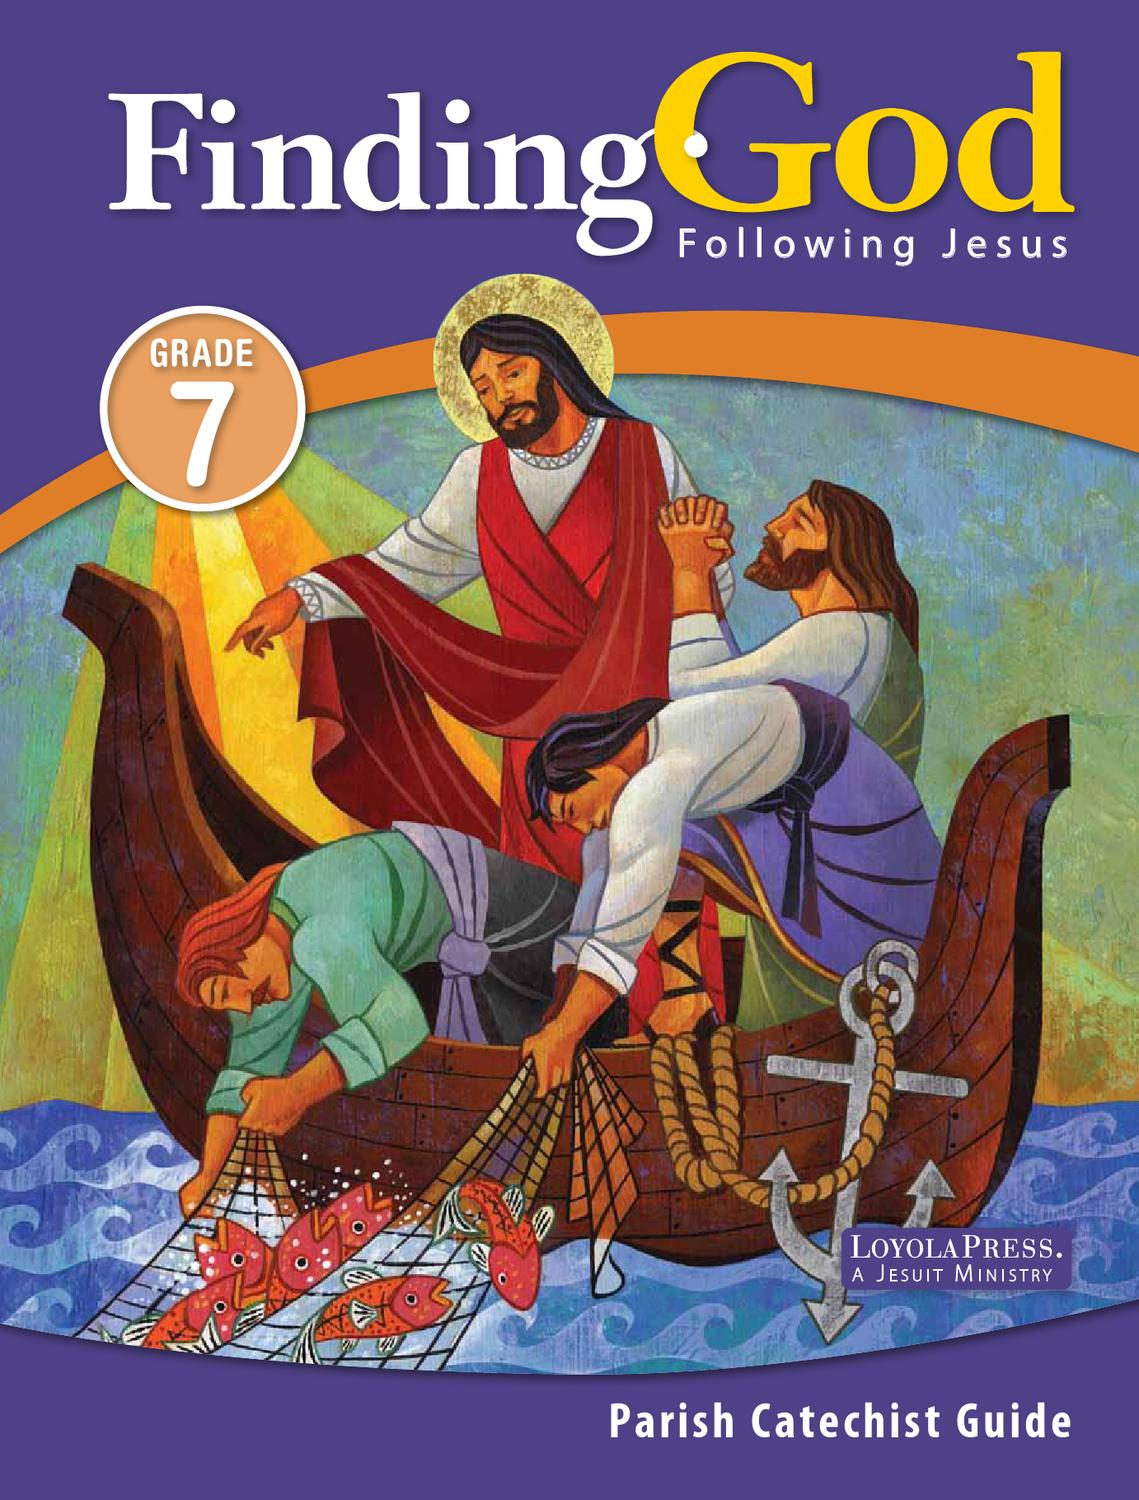 finding god 2013 grade 7 parish catechist guide part 1 by loyola press issuu